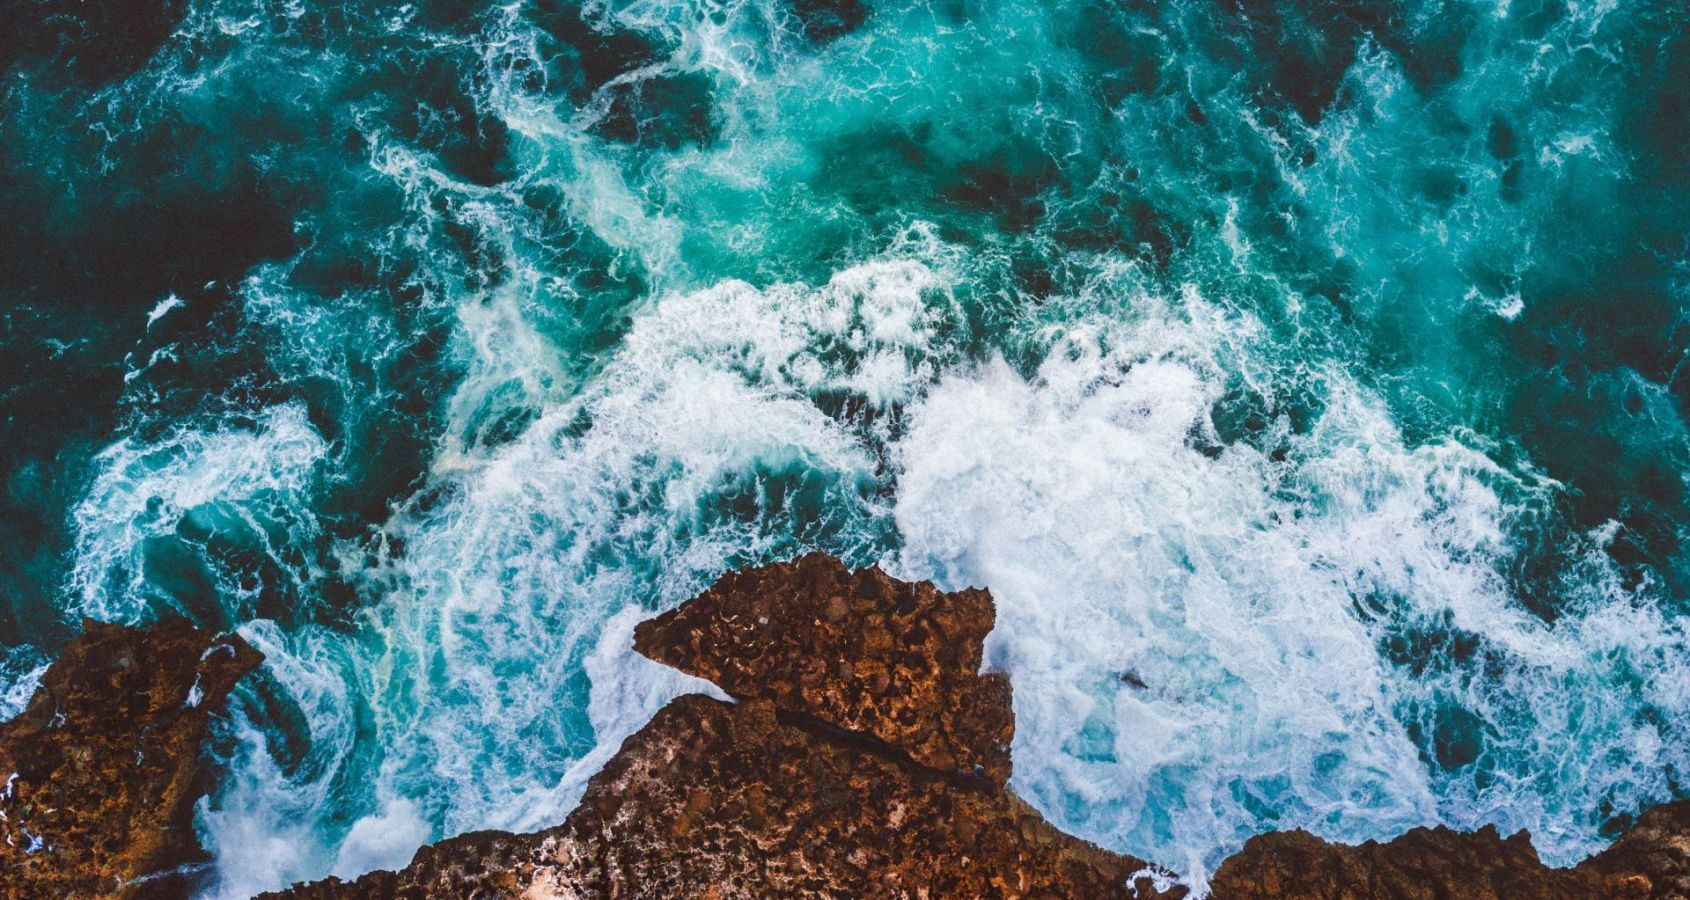 New Findings Suggest That Oceans Can Be Restored By 2050 The Incentive In 2020 Ocean Wallpaper Laptop Wallpaper Desktop Wallpapers Hd Wallpapers For Laptop